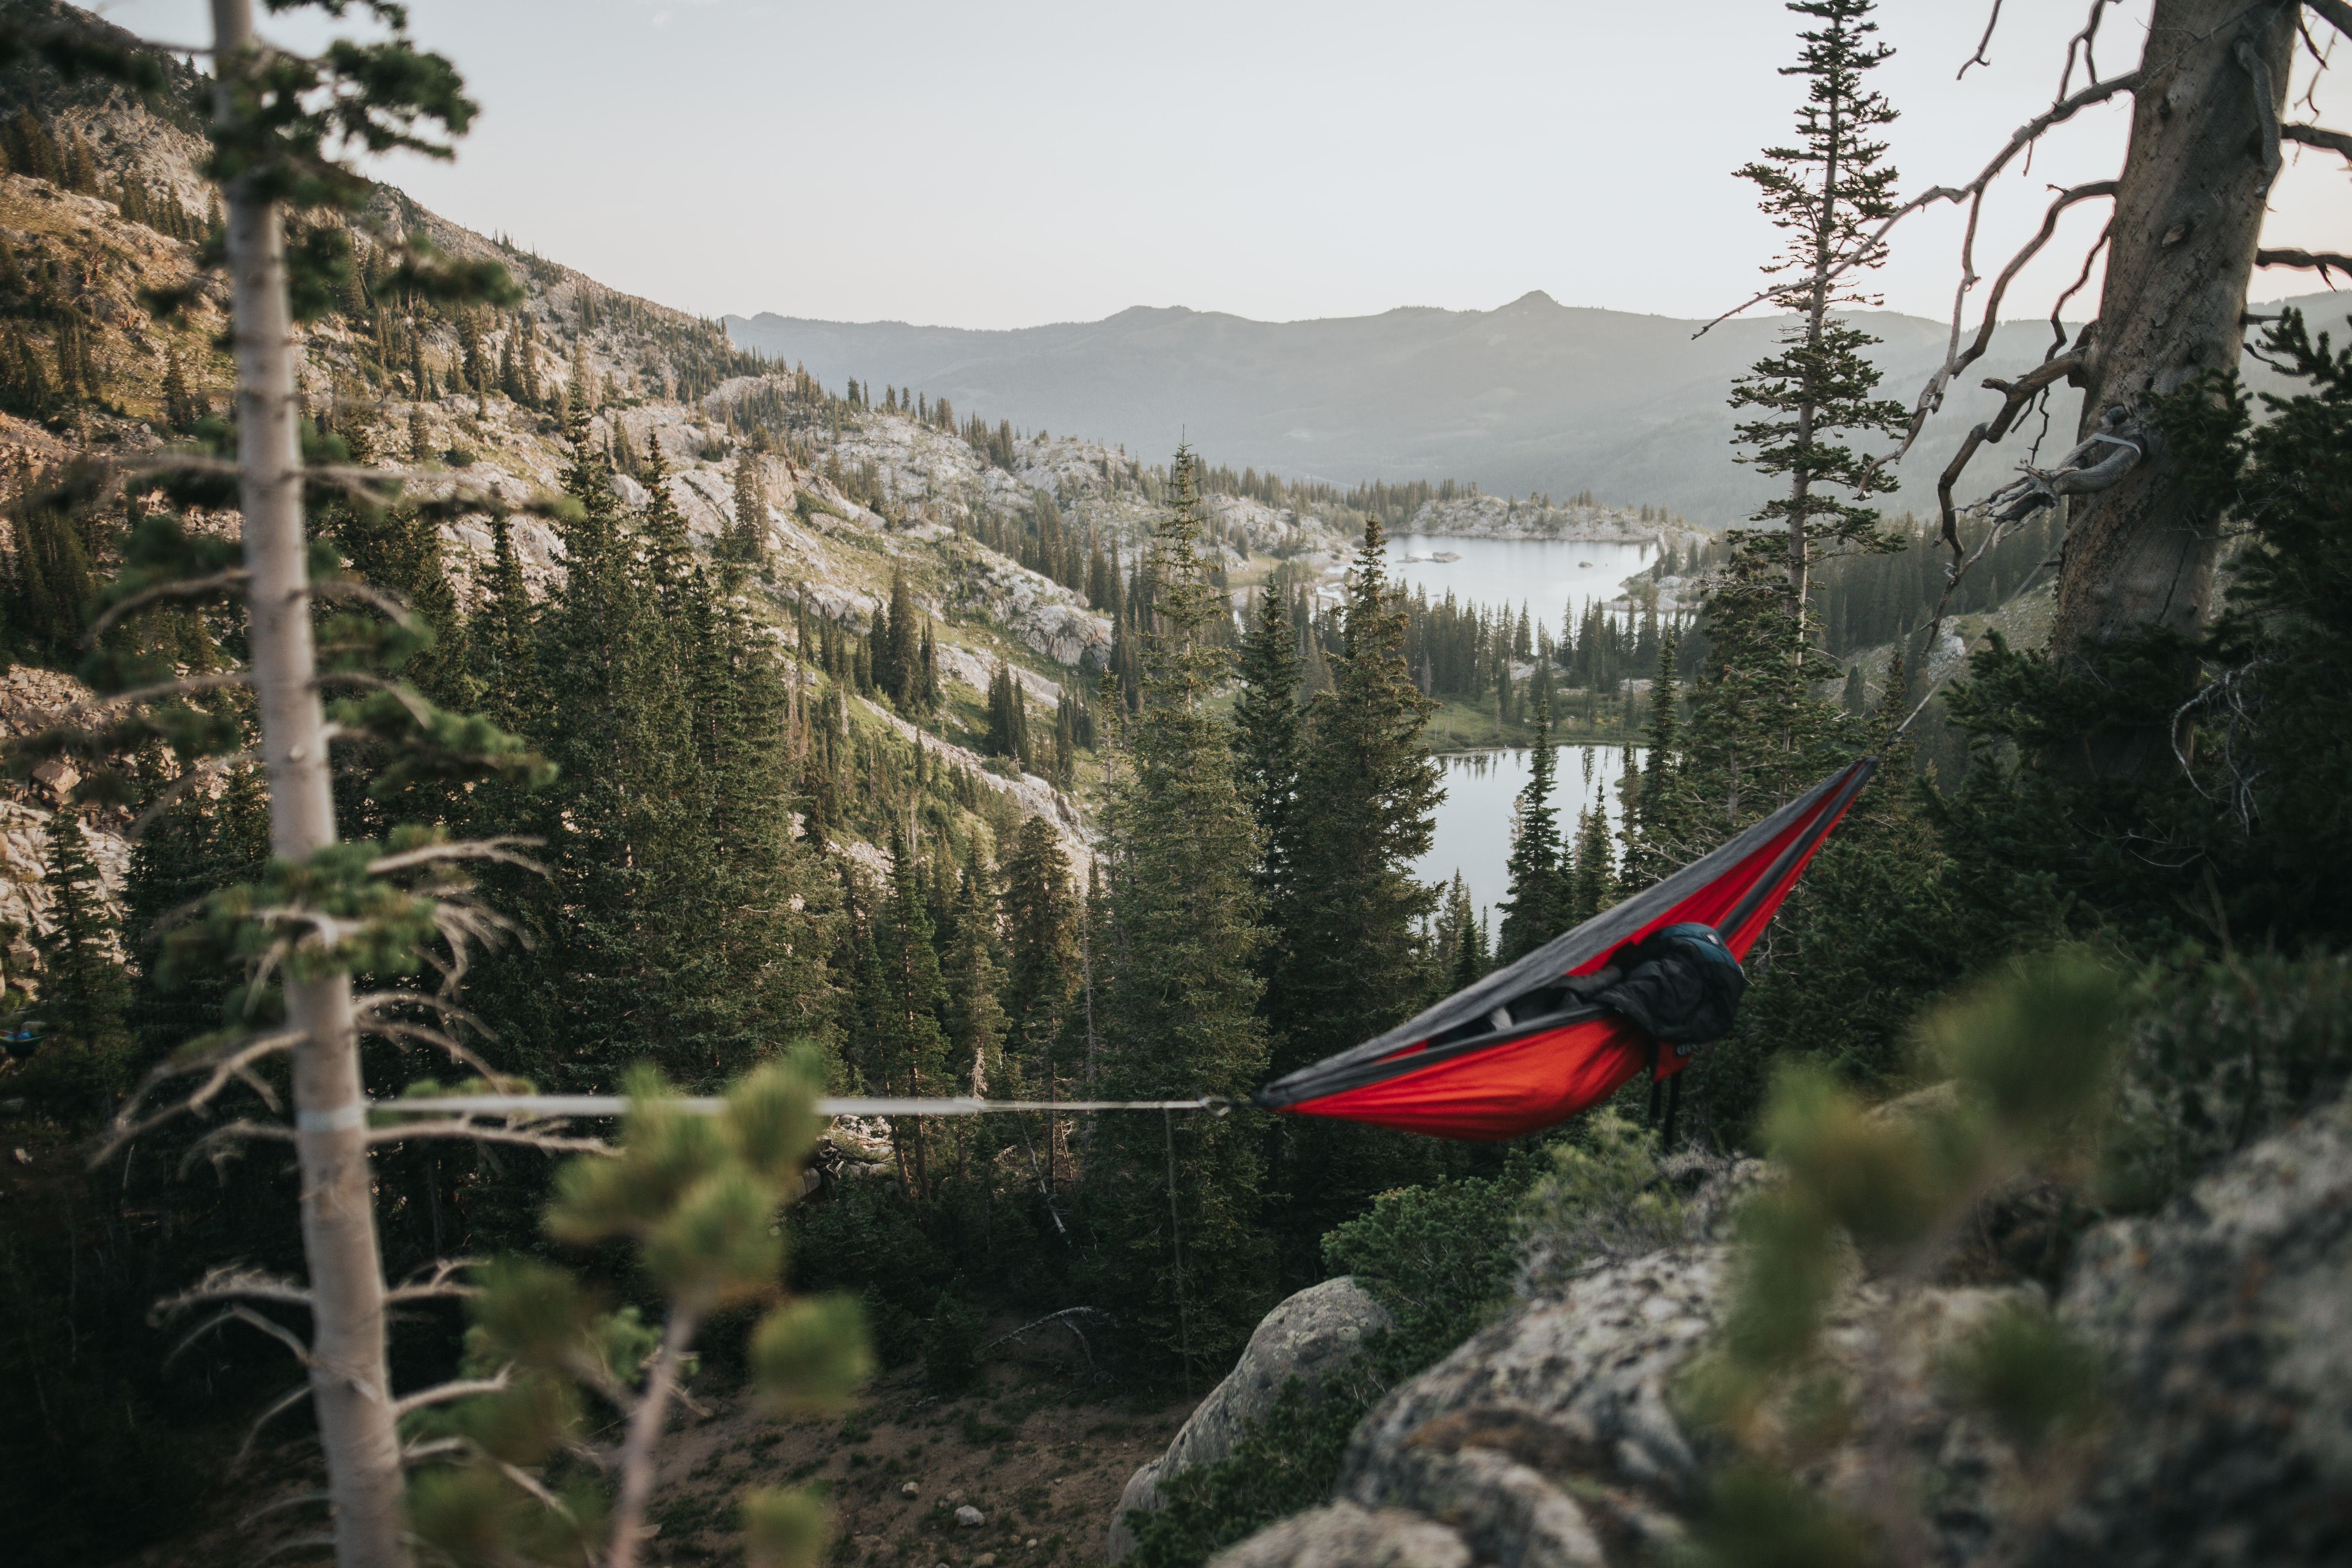 red and black hammock on forest